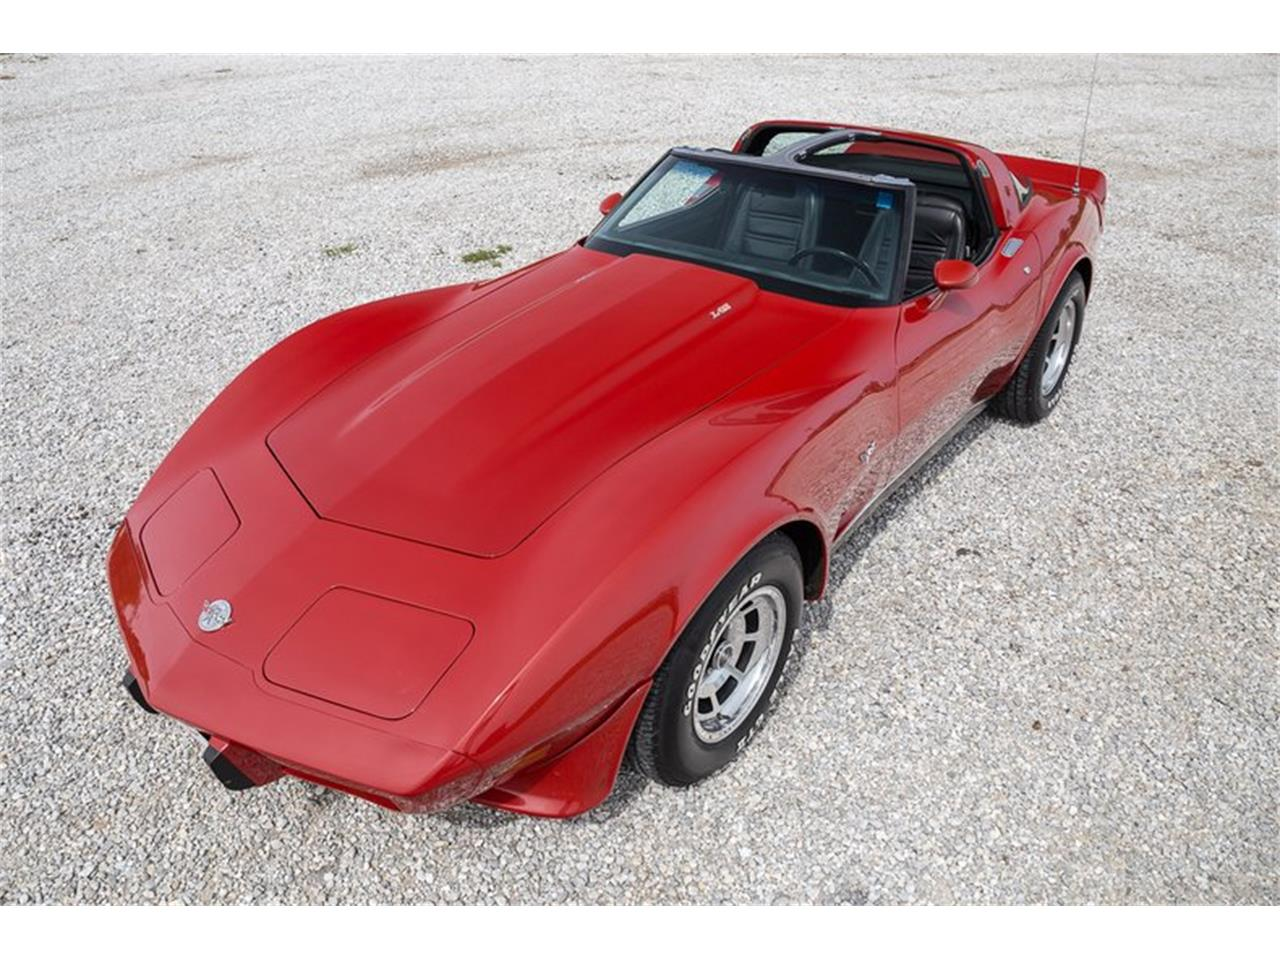 Large Picture of '78 Corvette located in Missouri Offered by Fast Lane Classic Cars Inc. - EBGP